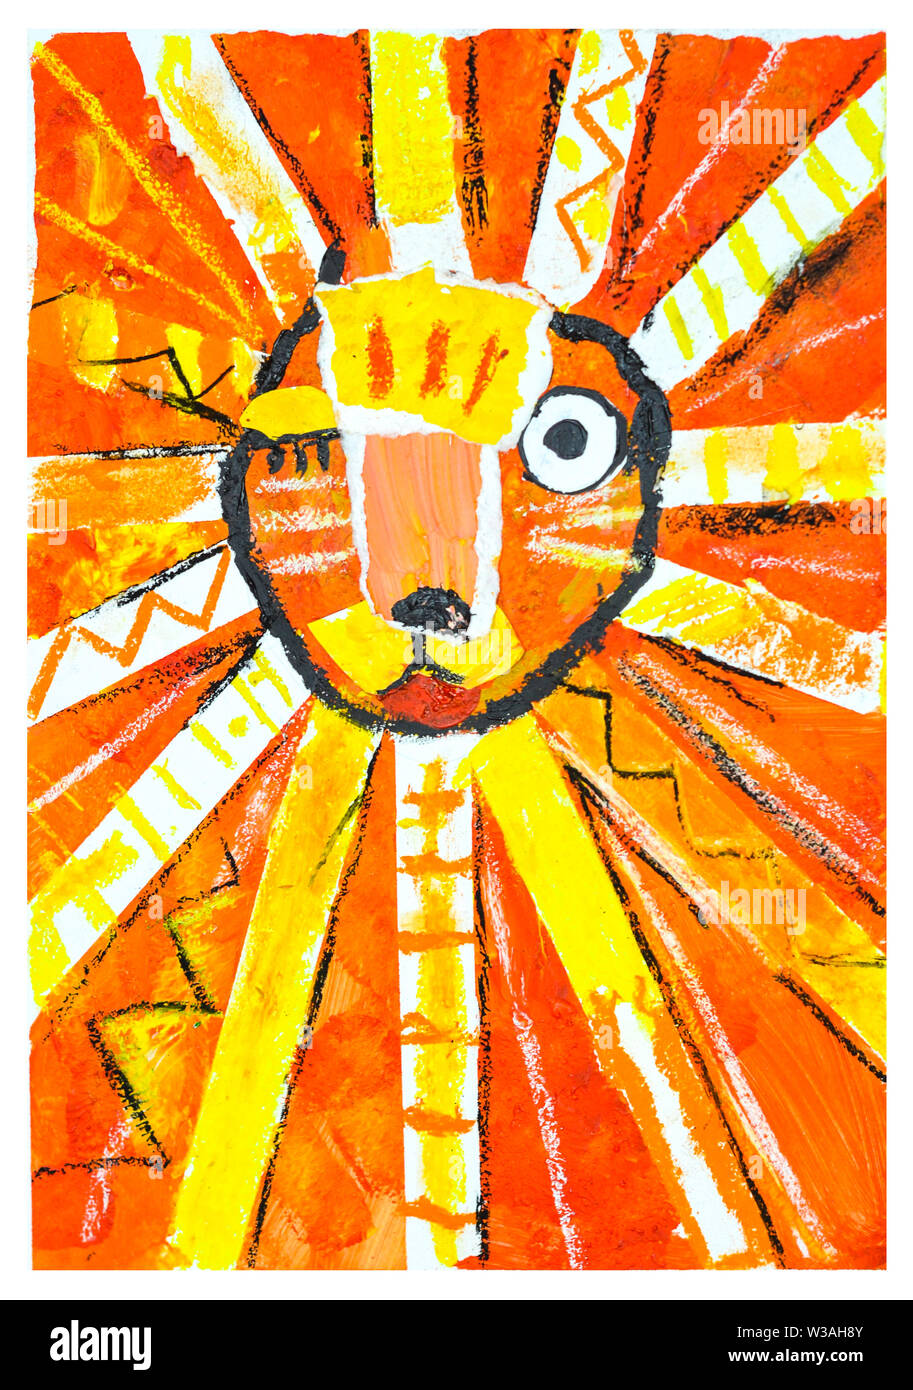 Eye Blinking Lion Abstract Painting Child Drawing Stock